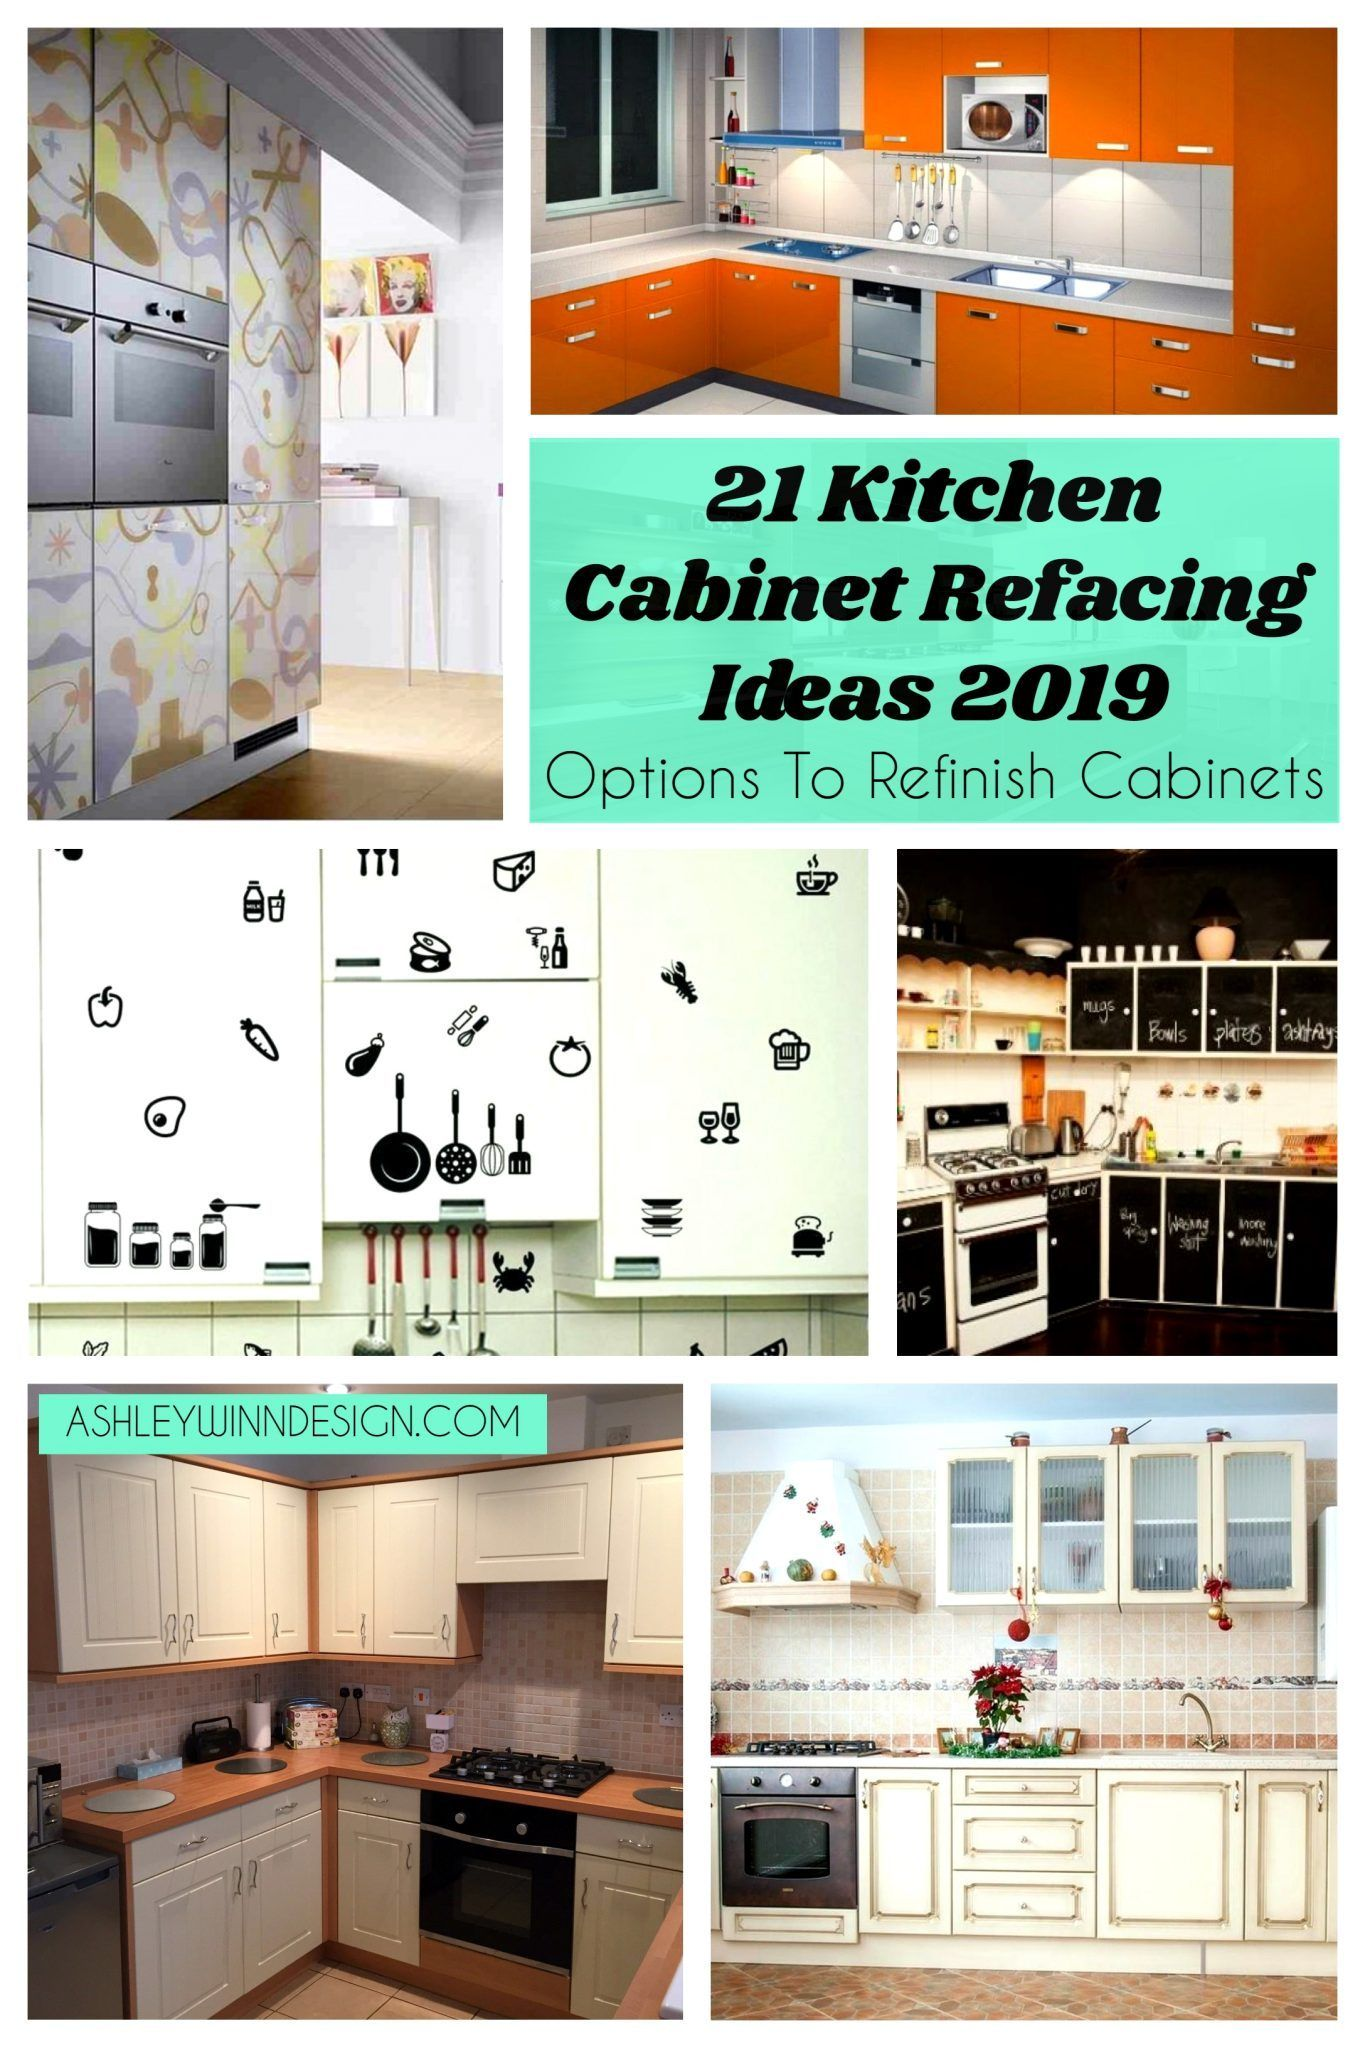 20 Kitchen Cabinet Refacing Ideas In 2021 Options To Refinish Cabinets Diy Kitchen Cabinets Refacing Kitchen Cabinets Kitchen Cabinets